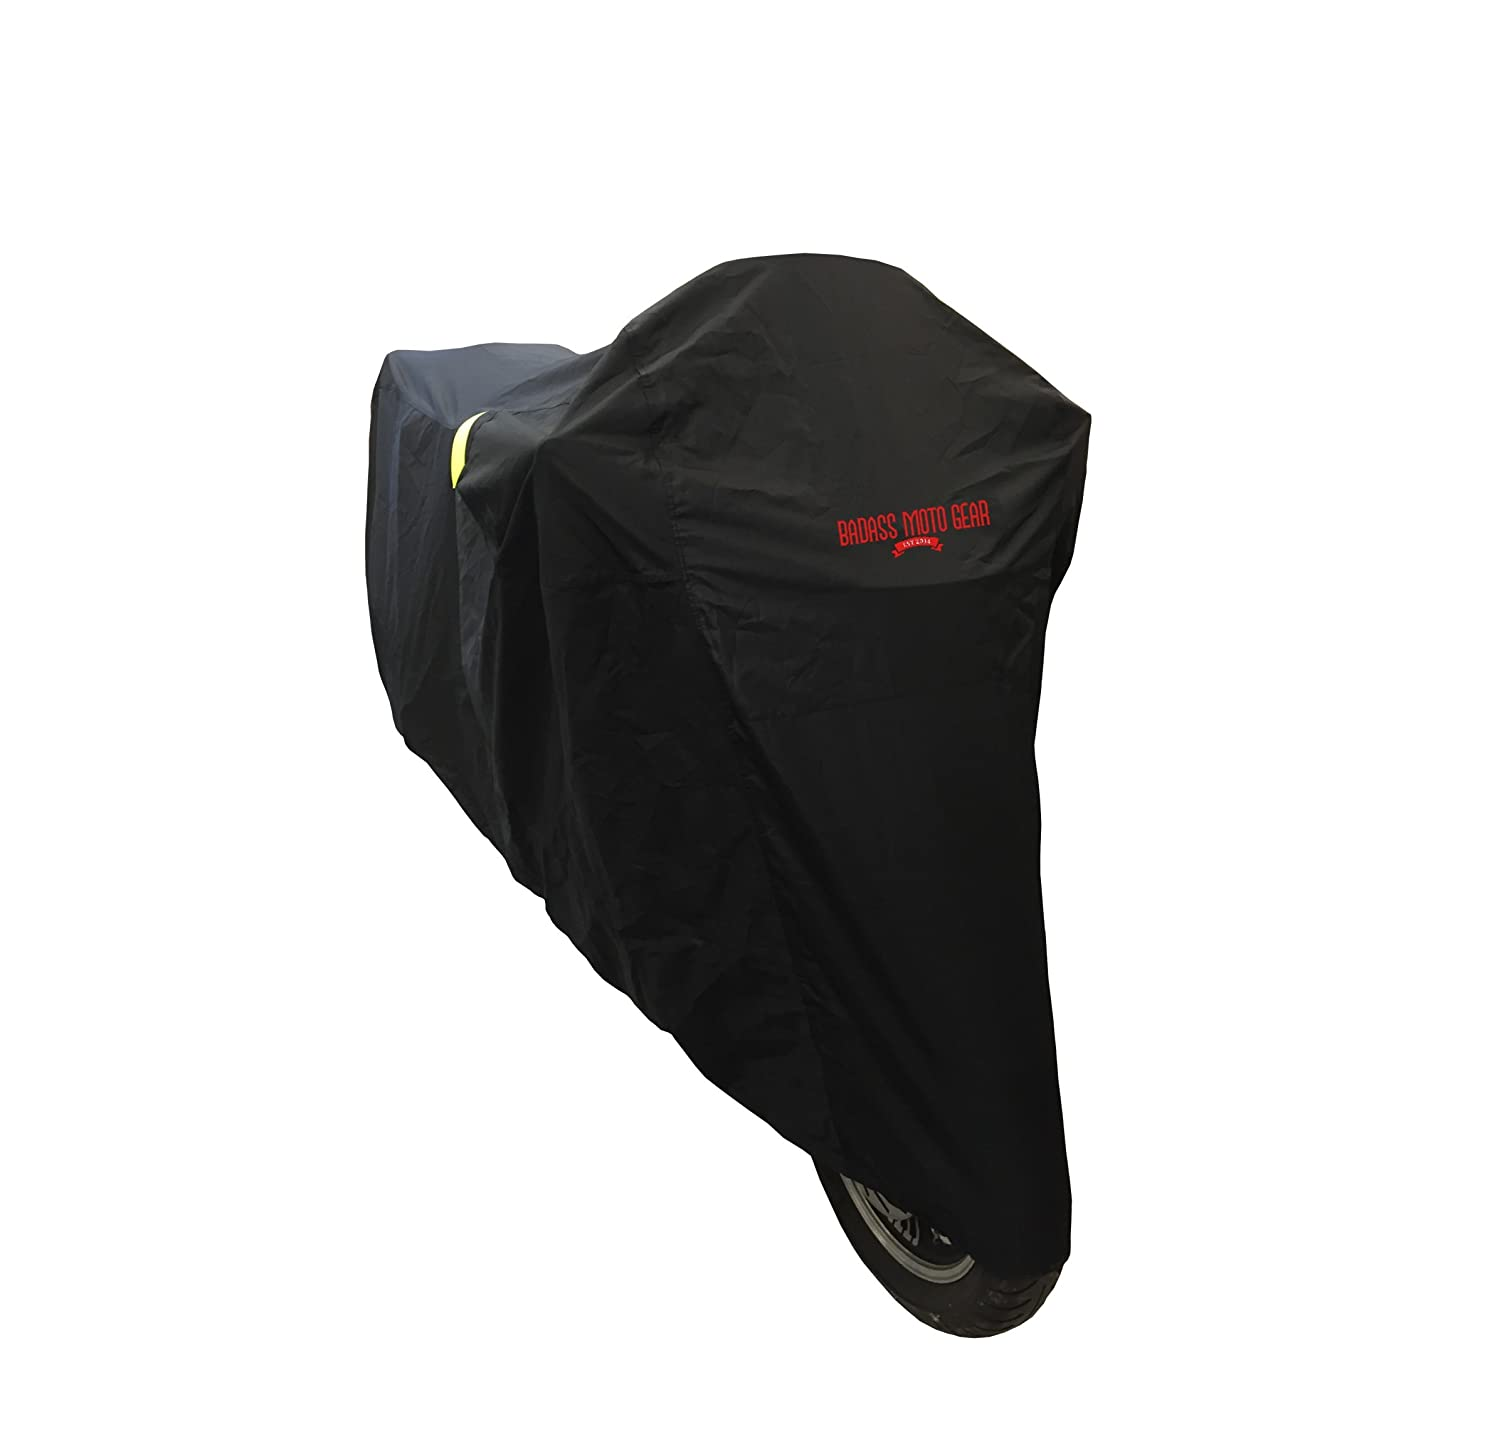 """Badass Moto Gear Ultimate Waterproof Motorcycle Cover. Heavy Duty, Night Reflective, Windshield Liner, Heat Shield, Vents, Lock Pocket, Taped Seams (108"""" Full Dressers, Goldwing, Tourers) EXTRA LARGE"""